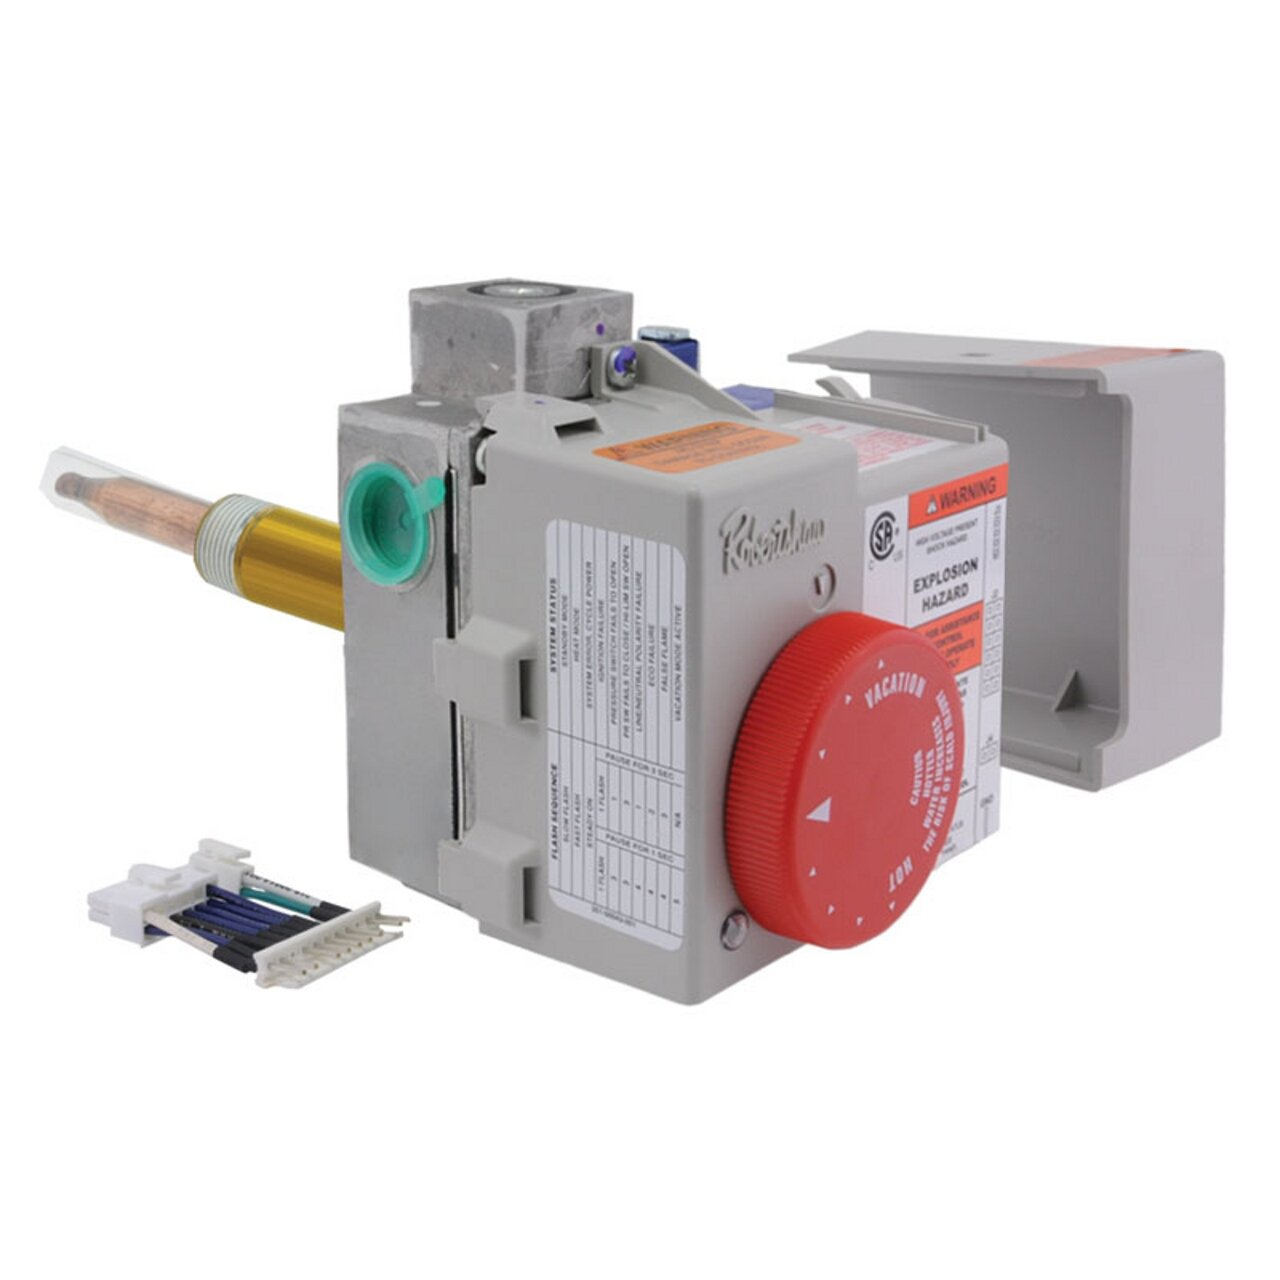 rheem gas heaters. rheem sp20161a gas control thermostat kit, natural - water heater replacement parts amazon.com heaters